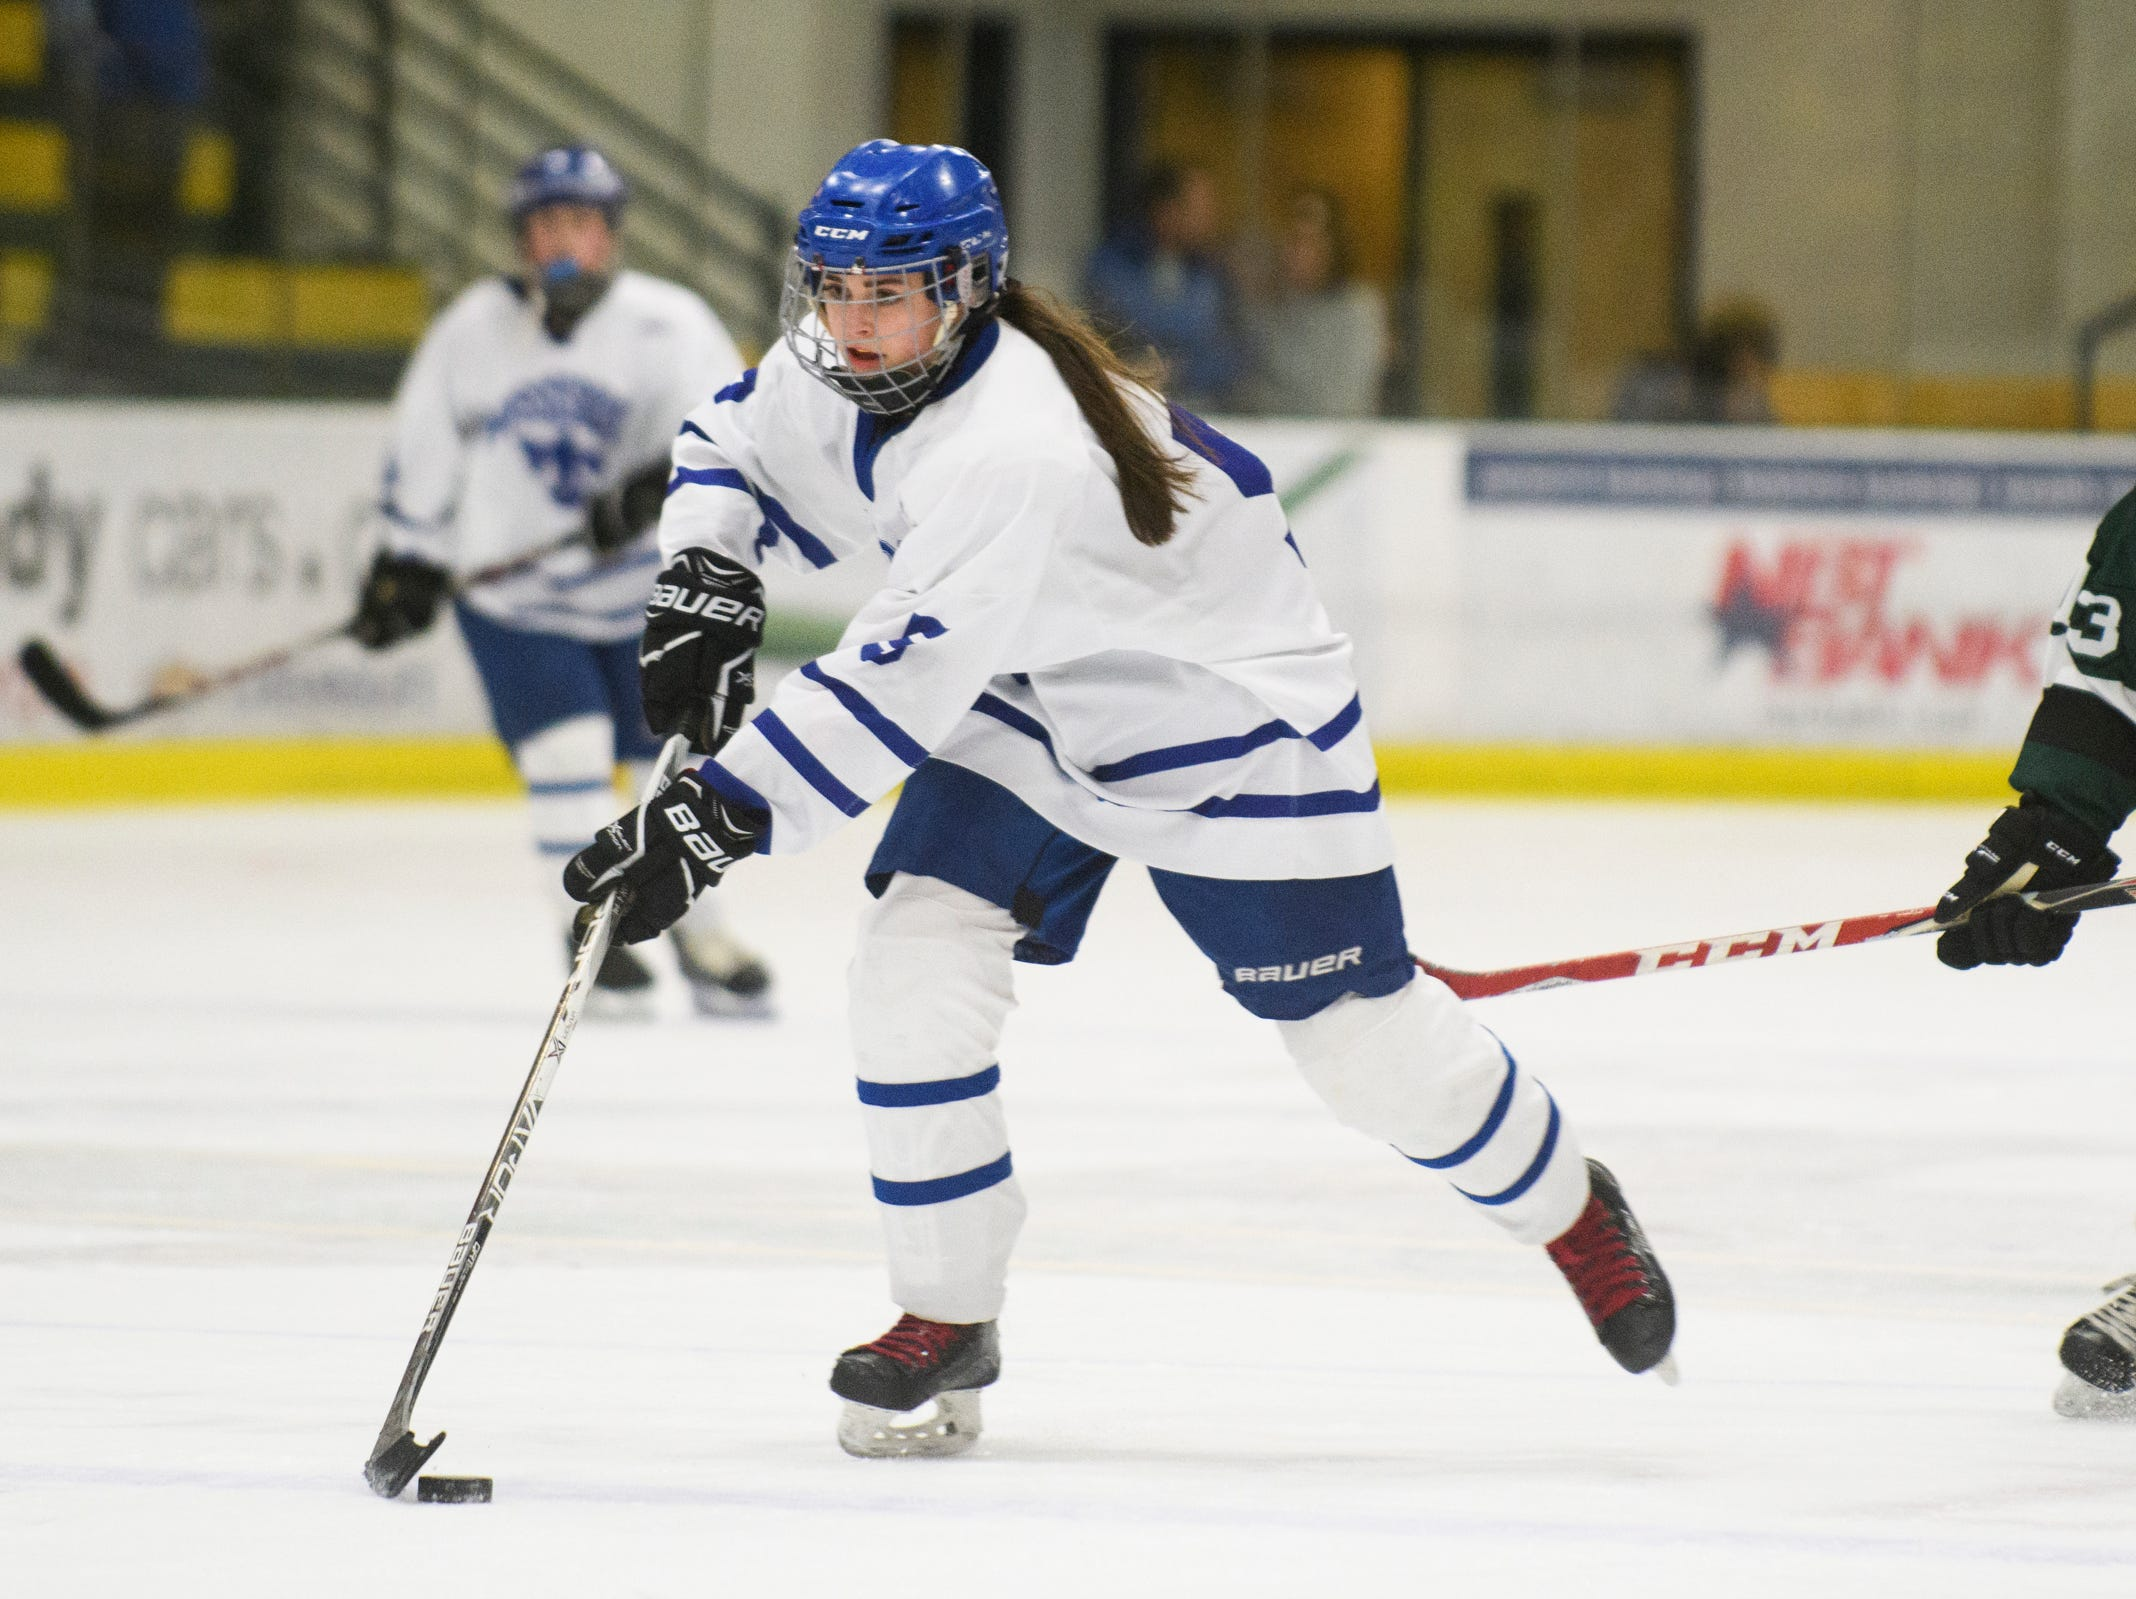 Missisquoi's Brianna Parent (5) skates down the ice with the puck during the DII girls hockey championship game between the Woodstock Wasps and the Missisquoi Thunderbirds at Gutterson Field House on Thursday night March 14, 2019 in Burlington, Vermont.